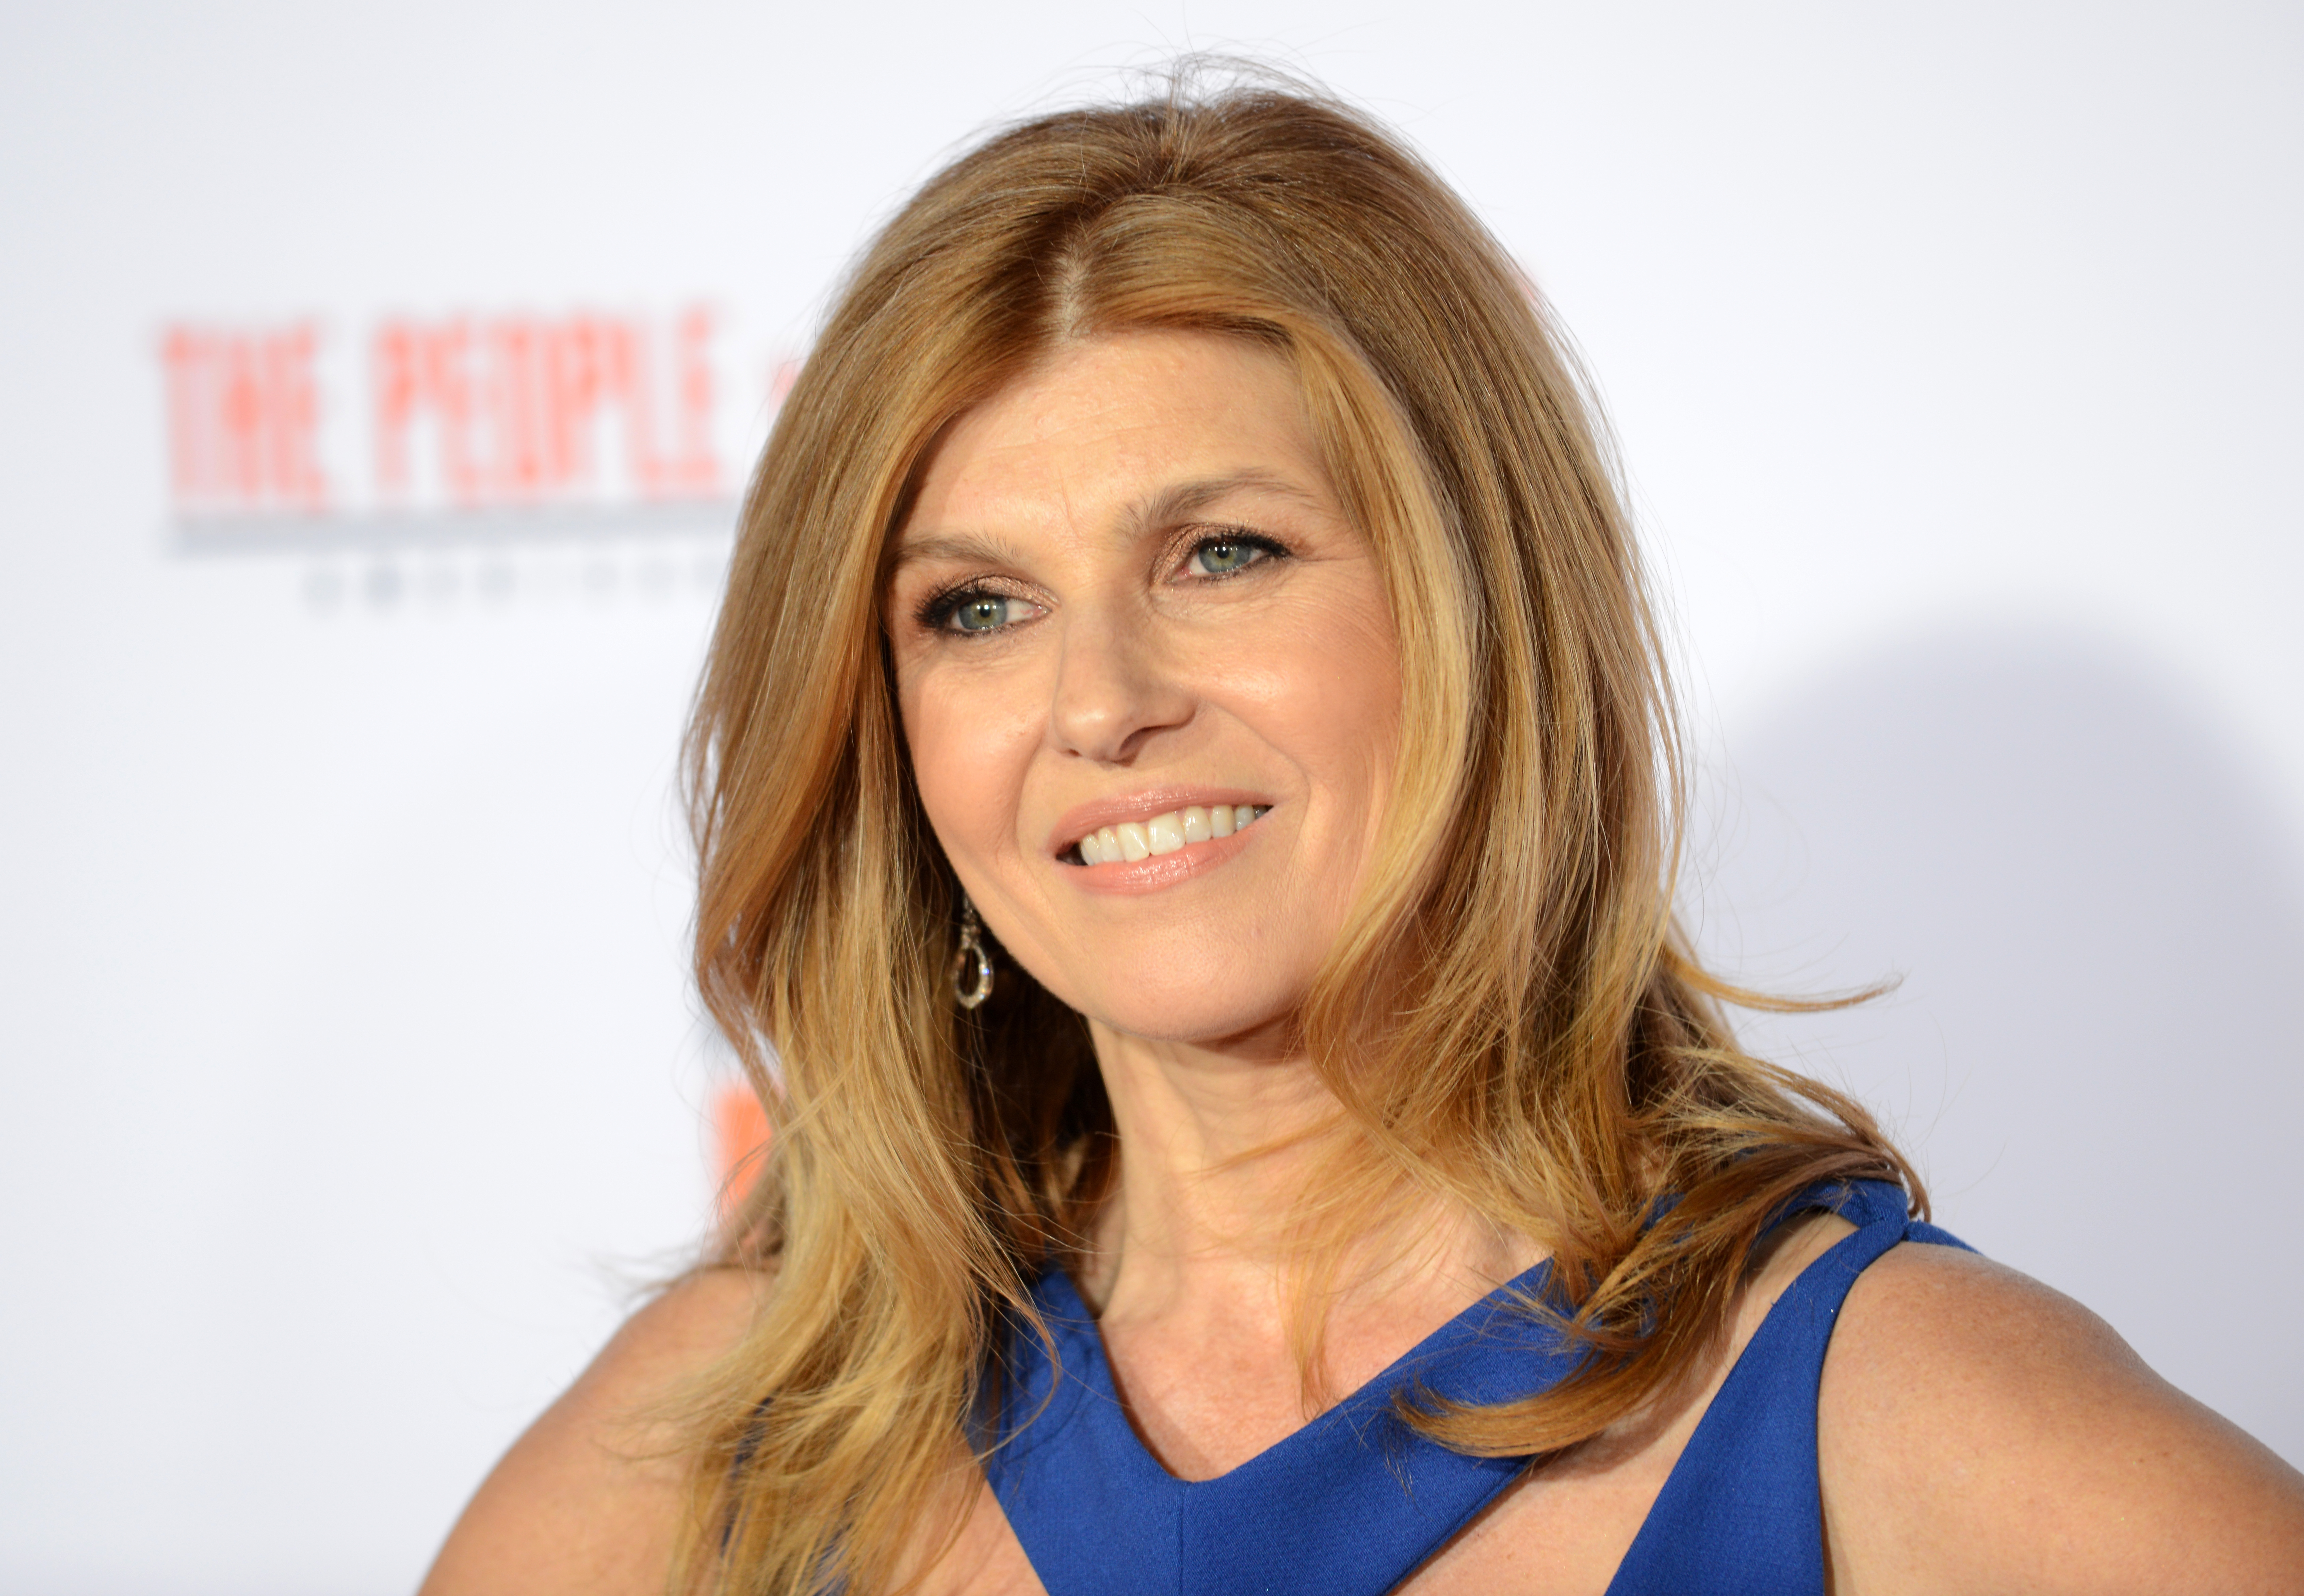 Connie Britton arrives for Premiere Of  FX's  American Crime Story - The People V. O.J. Simpson  held at Westwood Village Theatre on January 27, 2016 in Westwood, California.